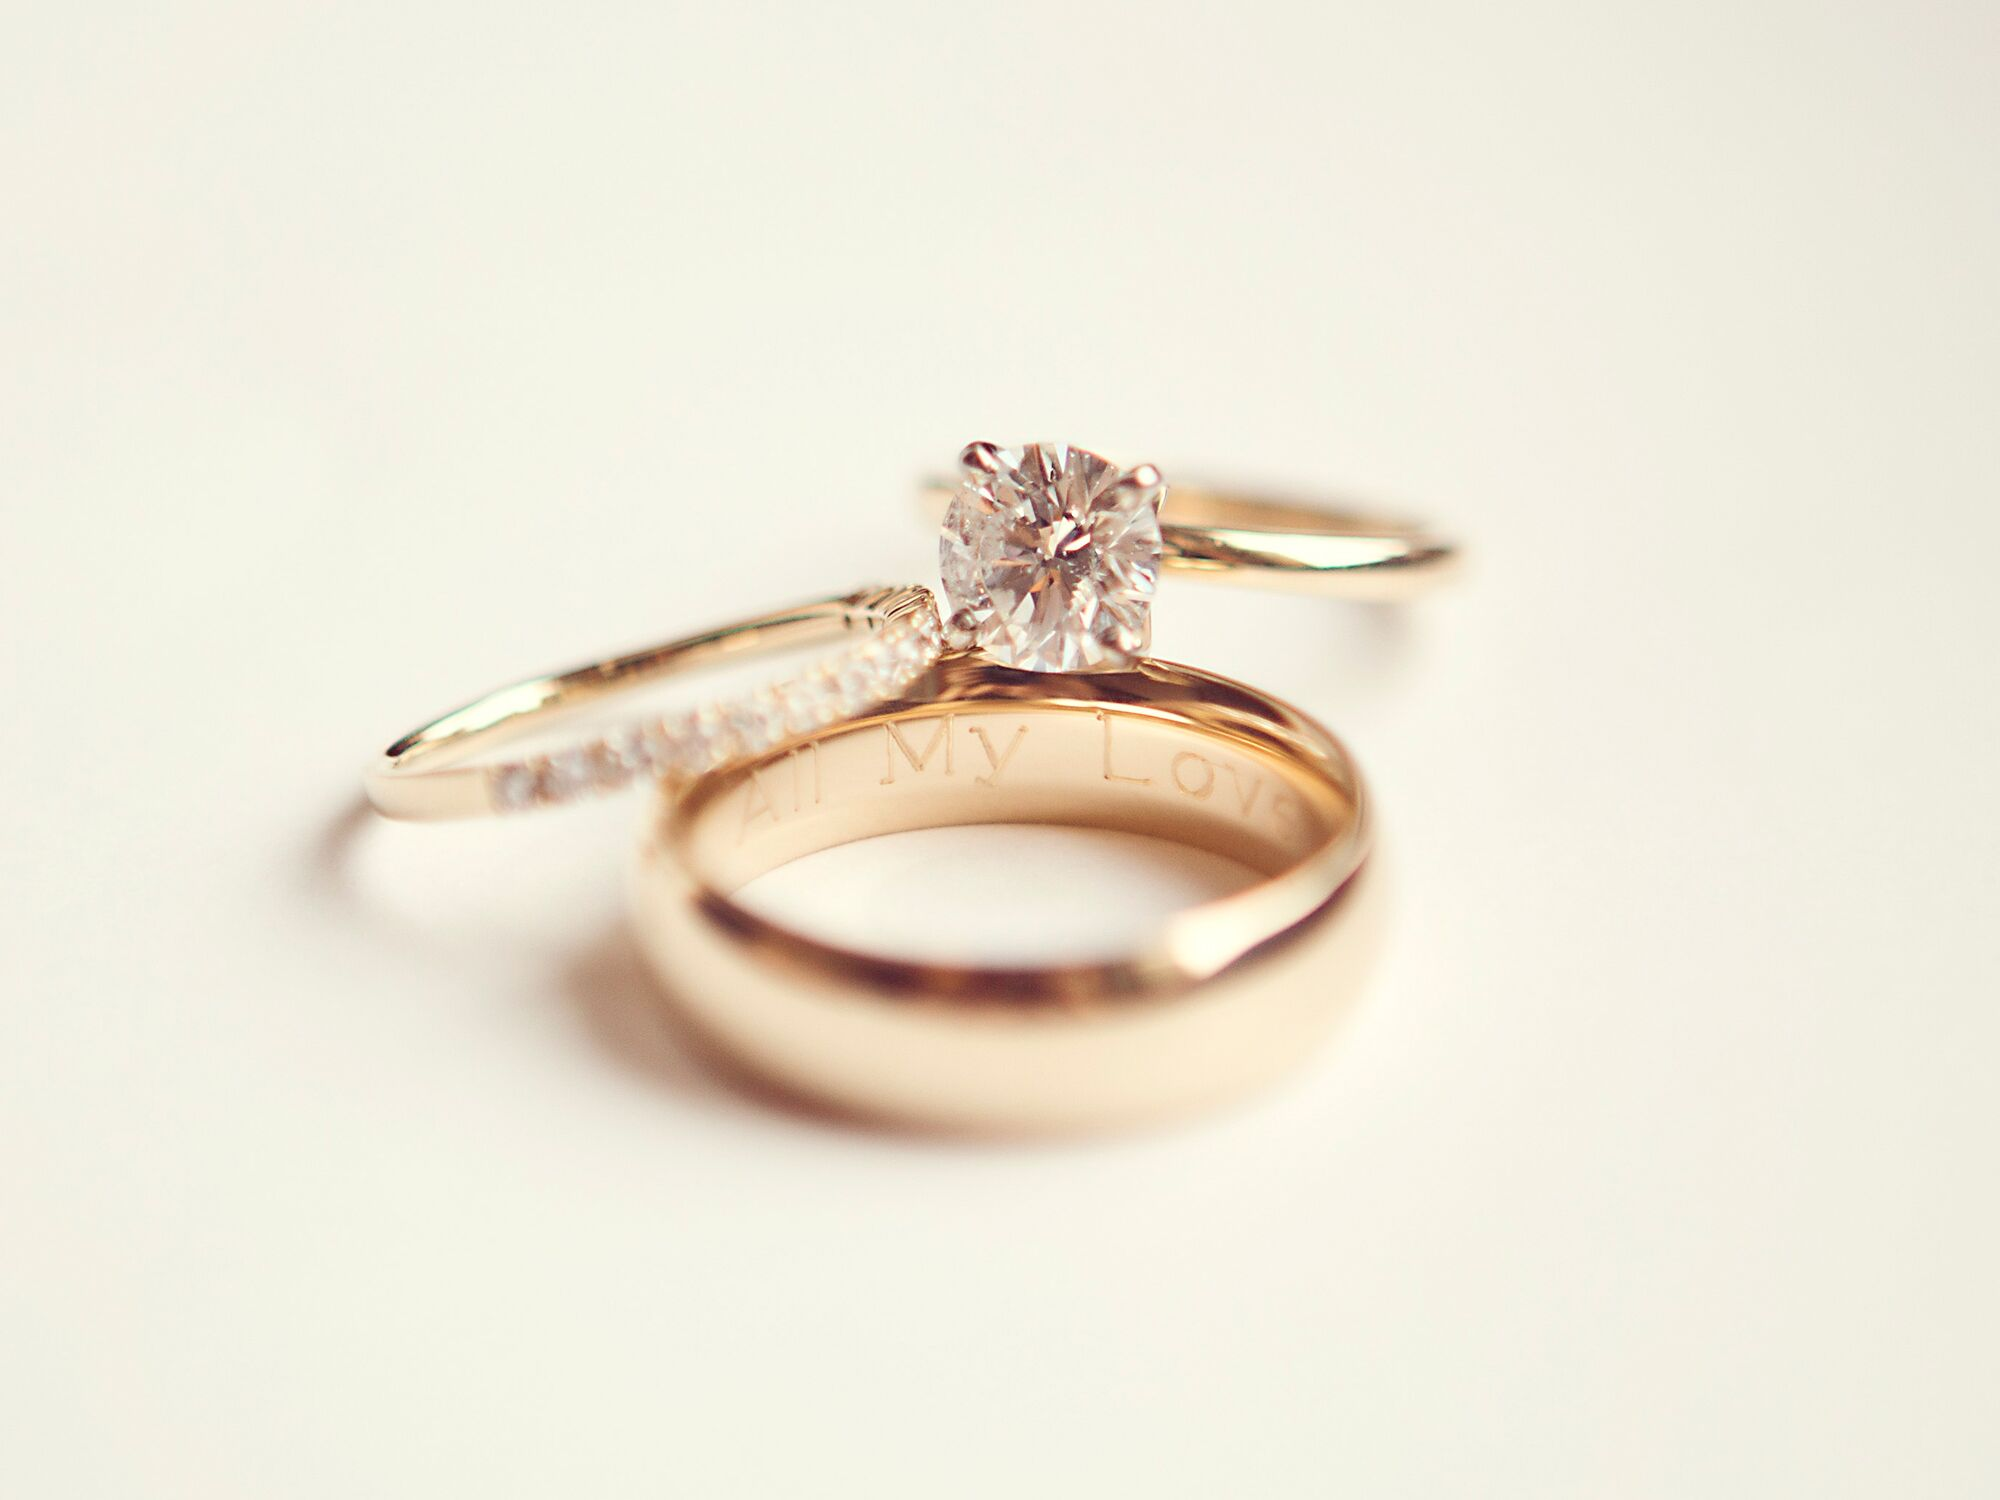 on rings hurray school wedding old for hk etsy vintage engagement kimmay